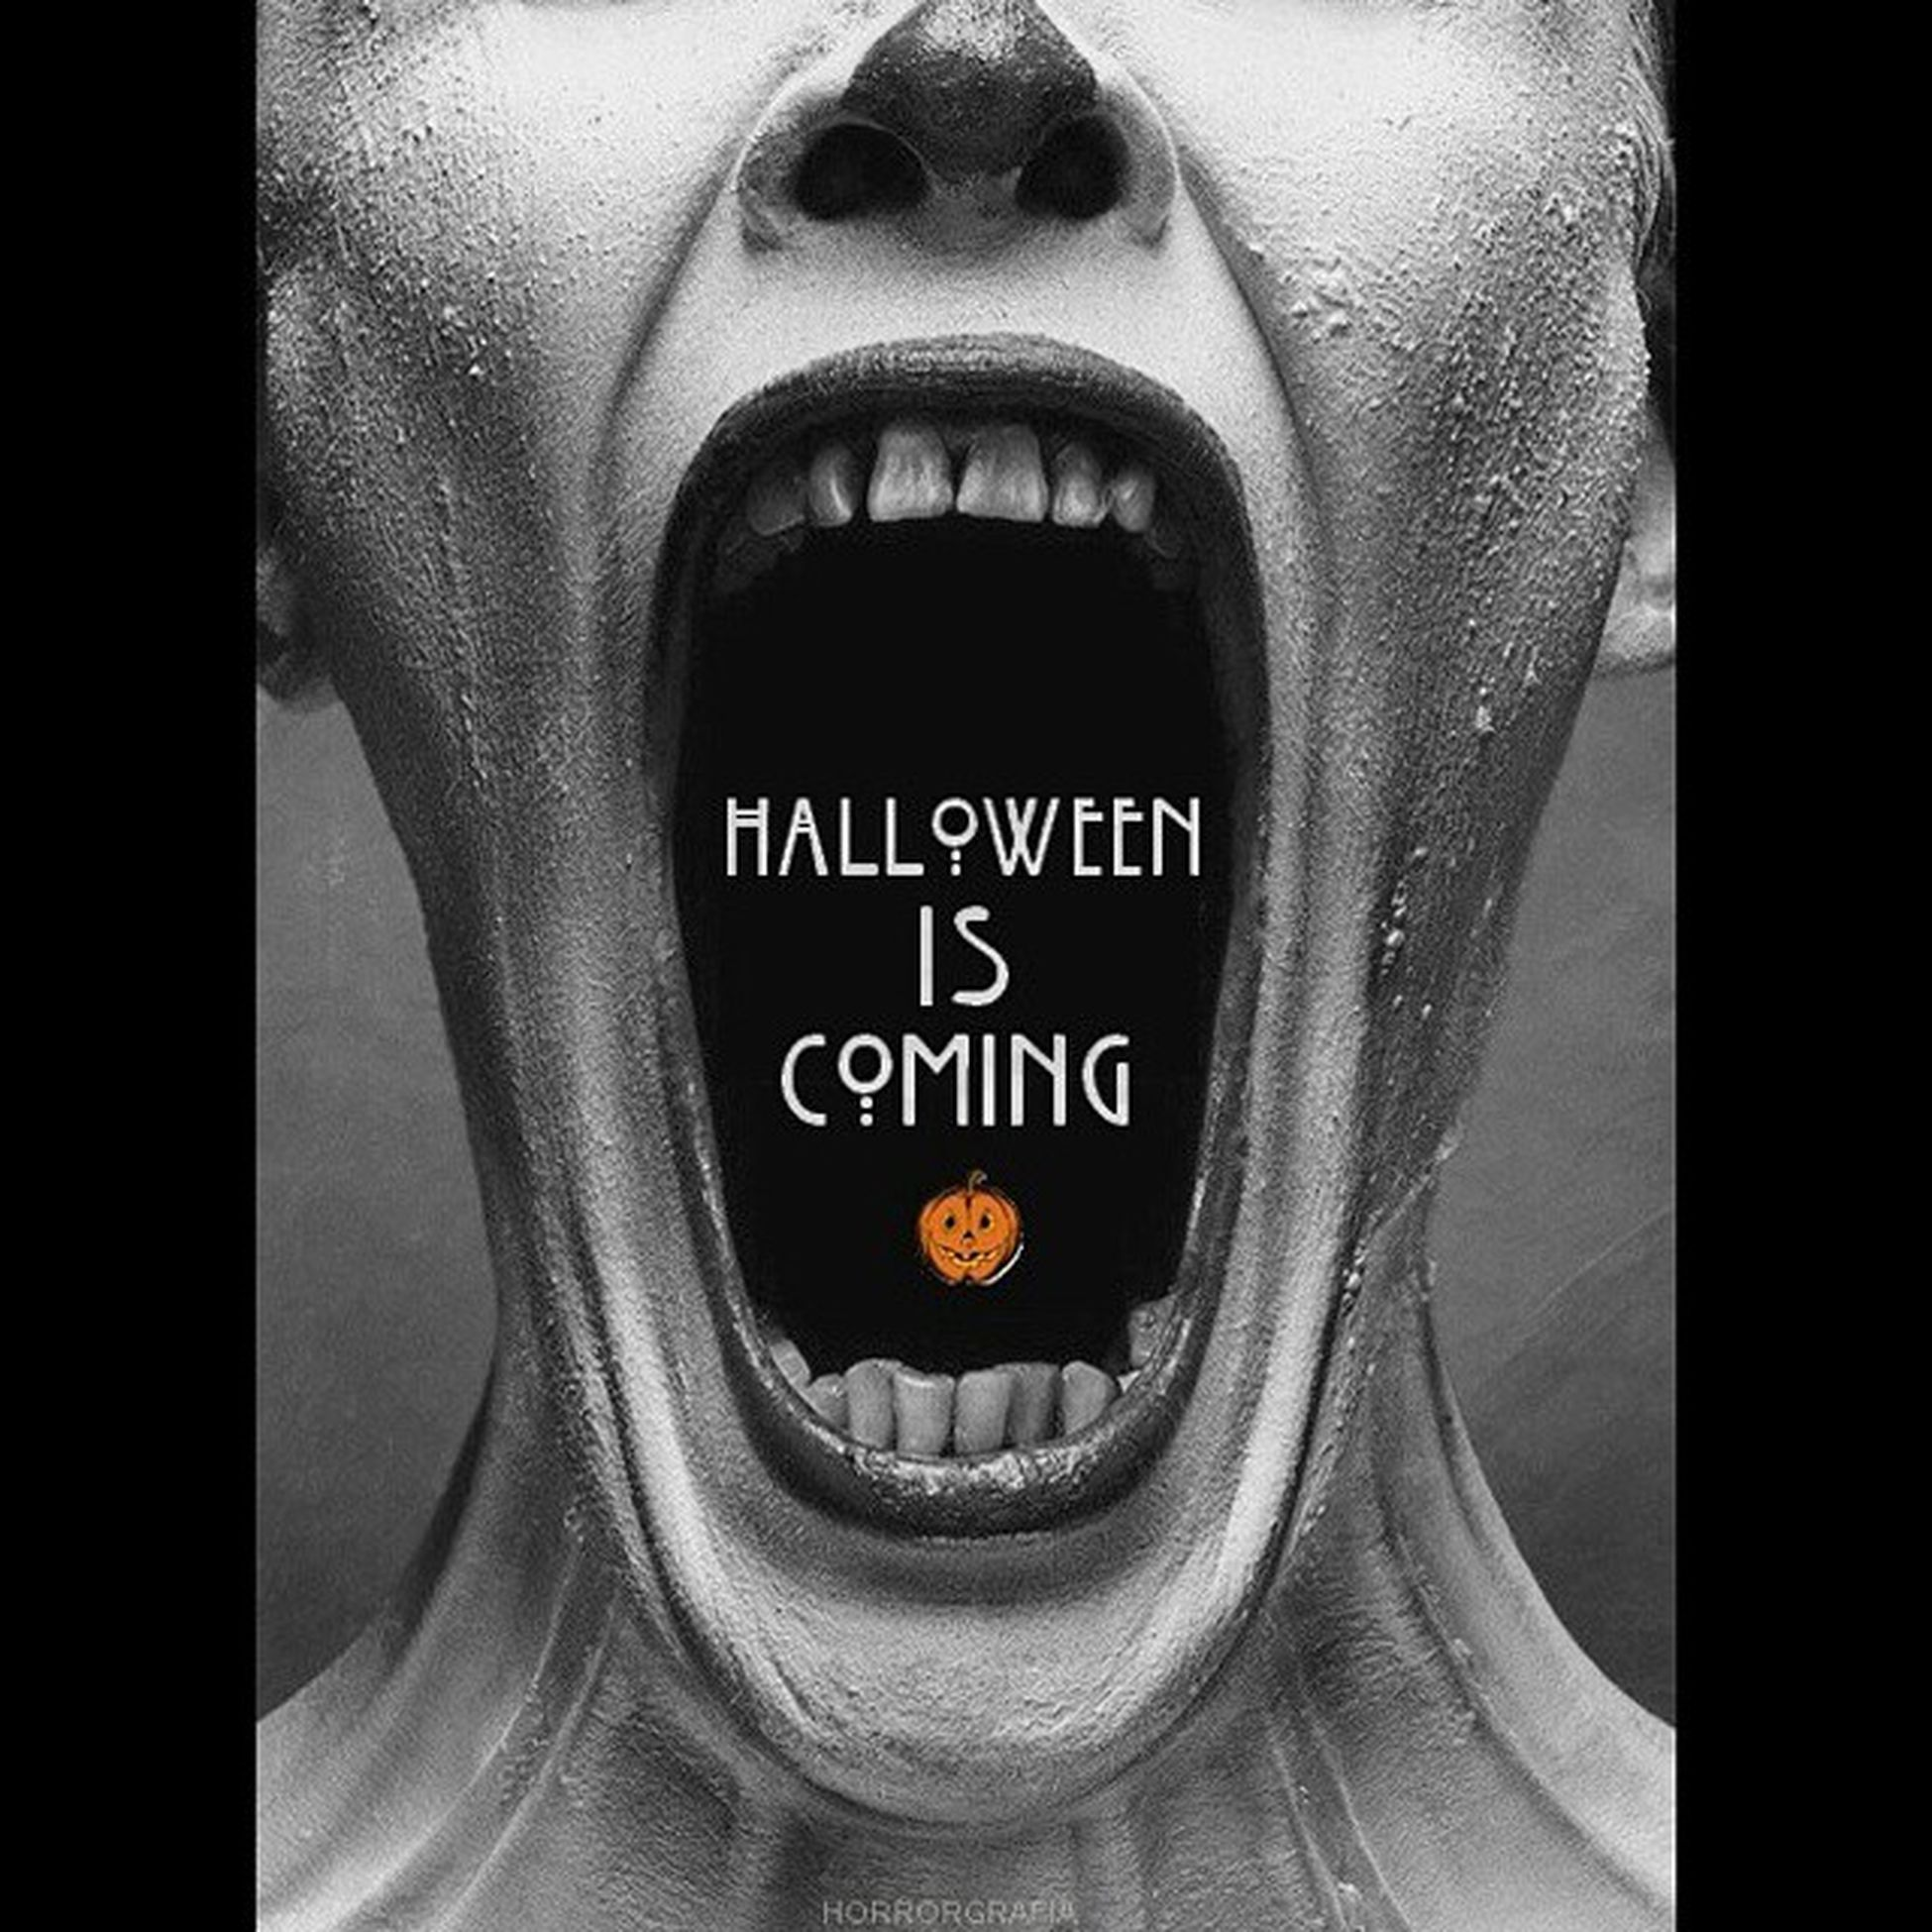 You guys! 🌜👻👽💀👾👿👺👹🌃 Halloween Oct October 30 TagsForLikes scary spooky boo scared costume ghost pumpkin pumpkins pumpkinpatch carving candy orange jackolantern creepy fall trickortreat trick treat instagood party holiday celebrate bestoftheday hauntedhouse haunted